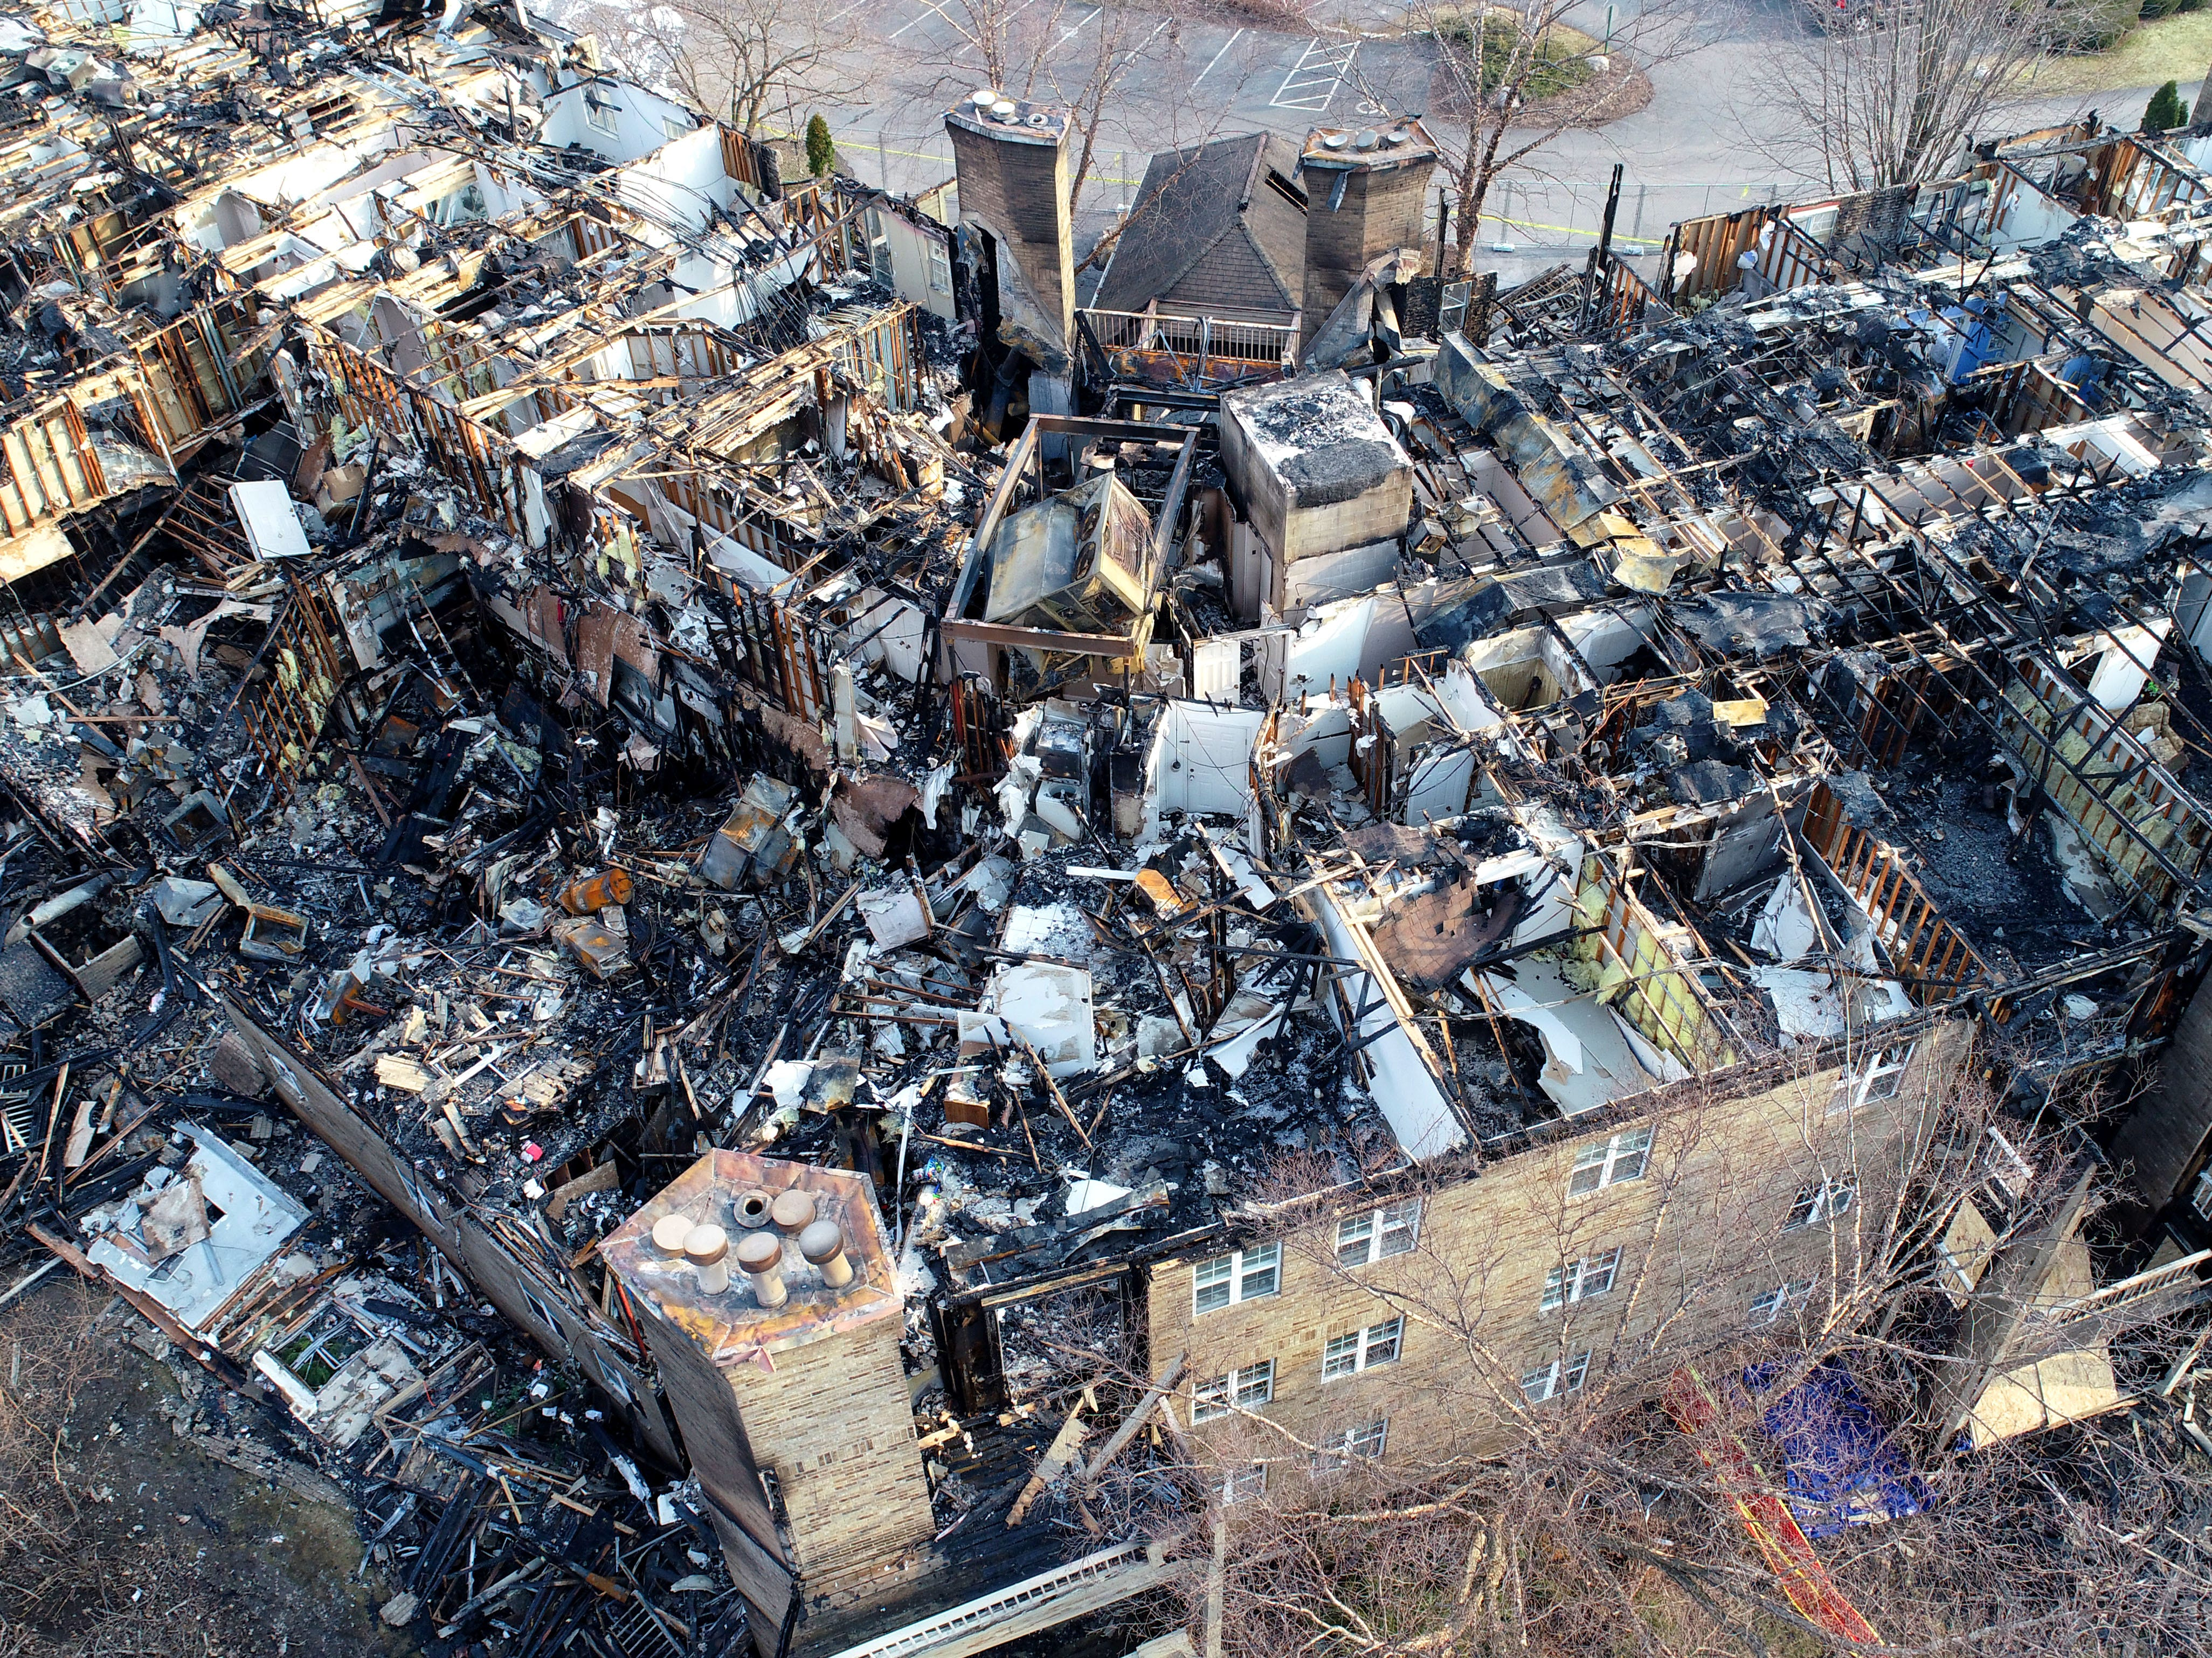 An aerial view from a drone shows the destruction after a fire.